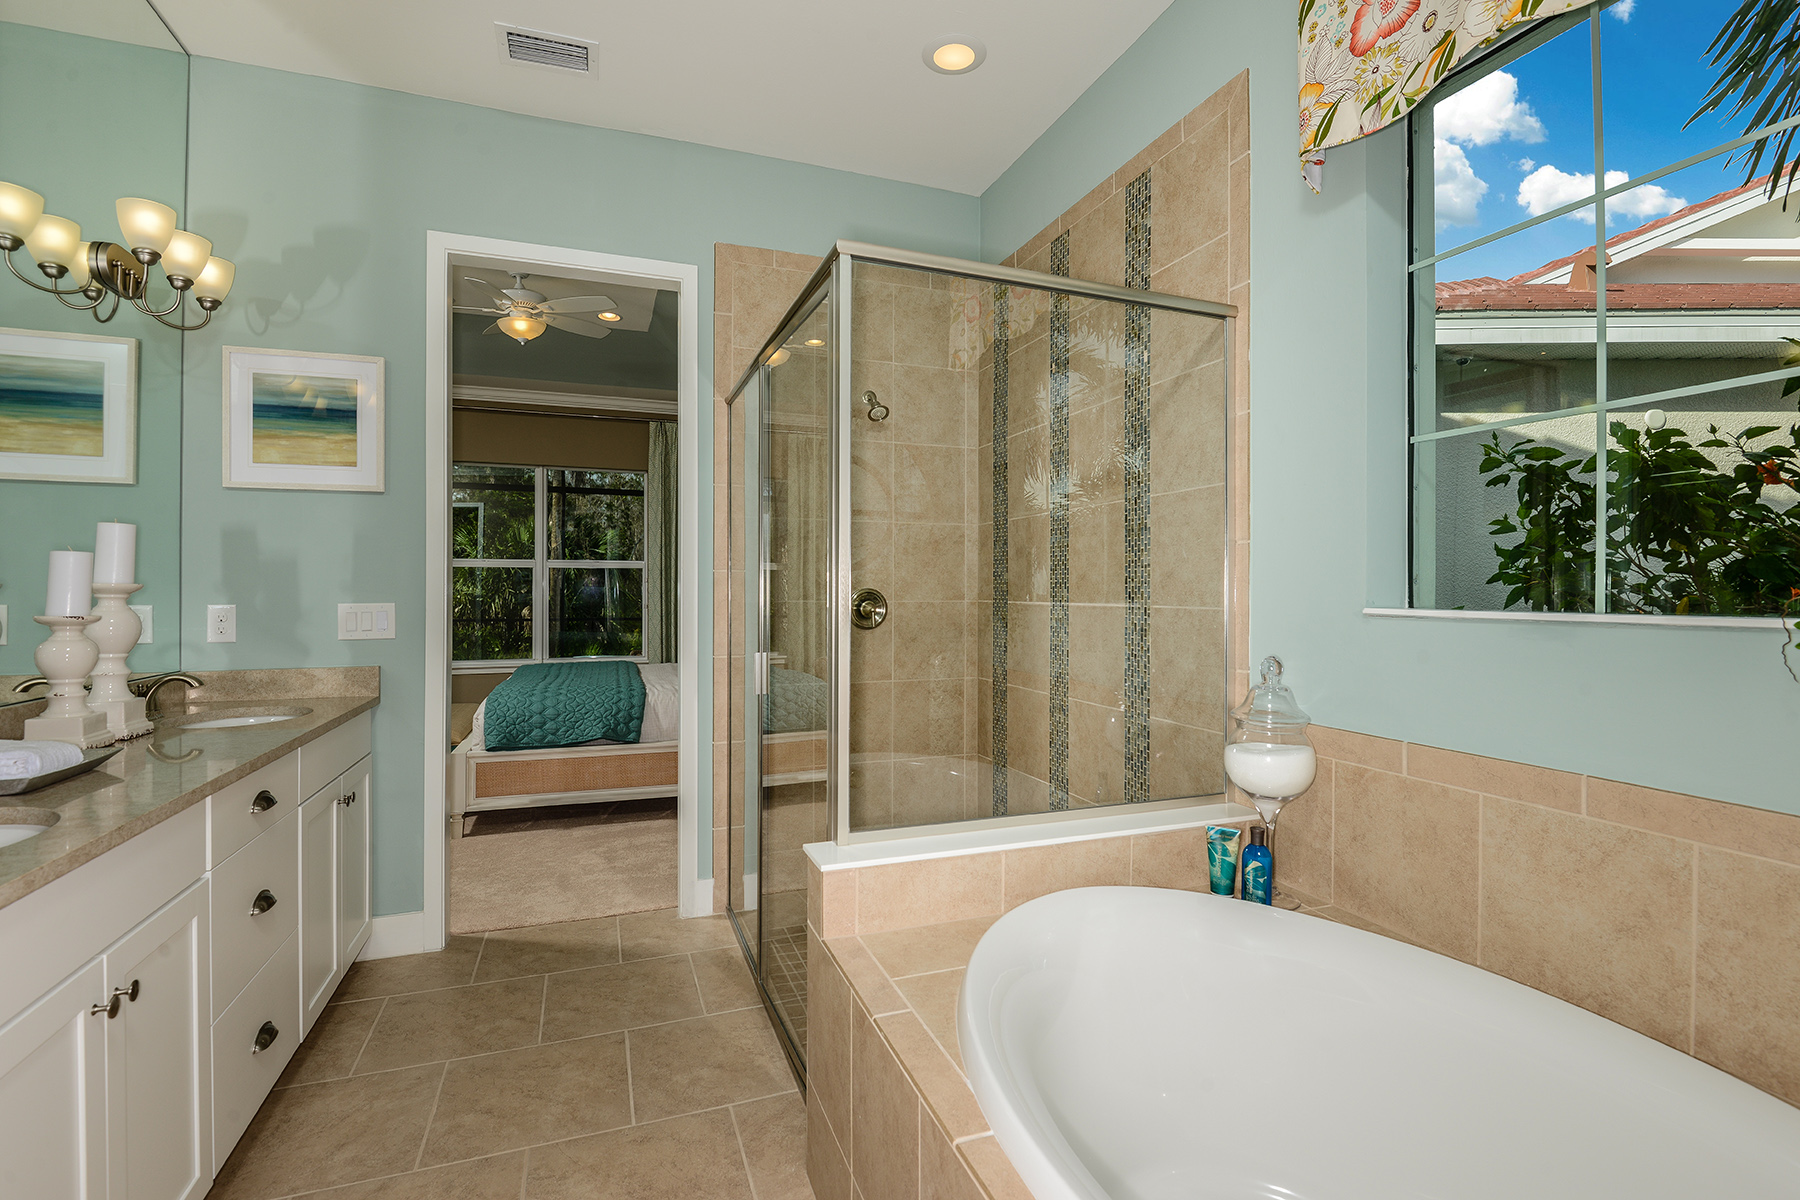 Banyan Plan Bathroom_Master Bath at Compass Landing in Naples Florida by Mattamy Homes